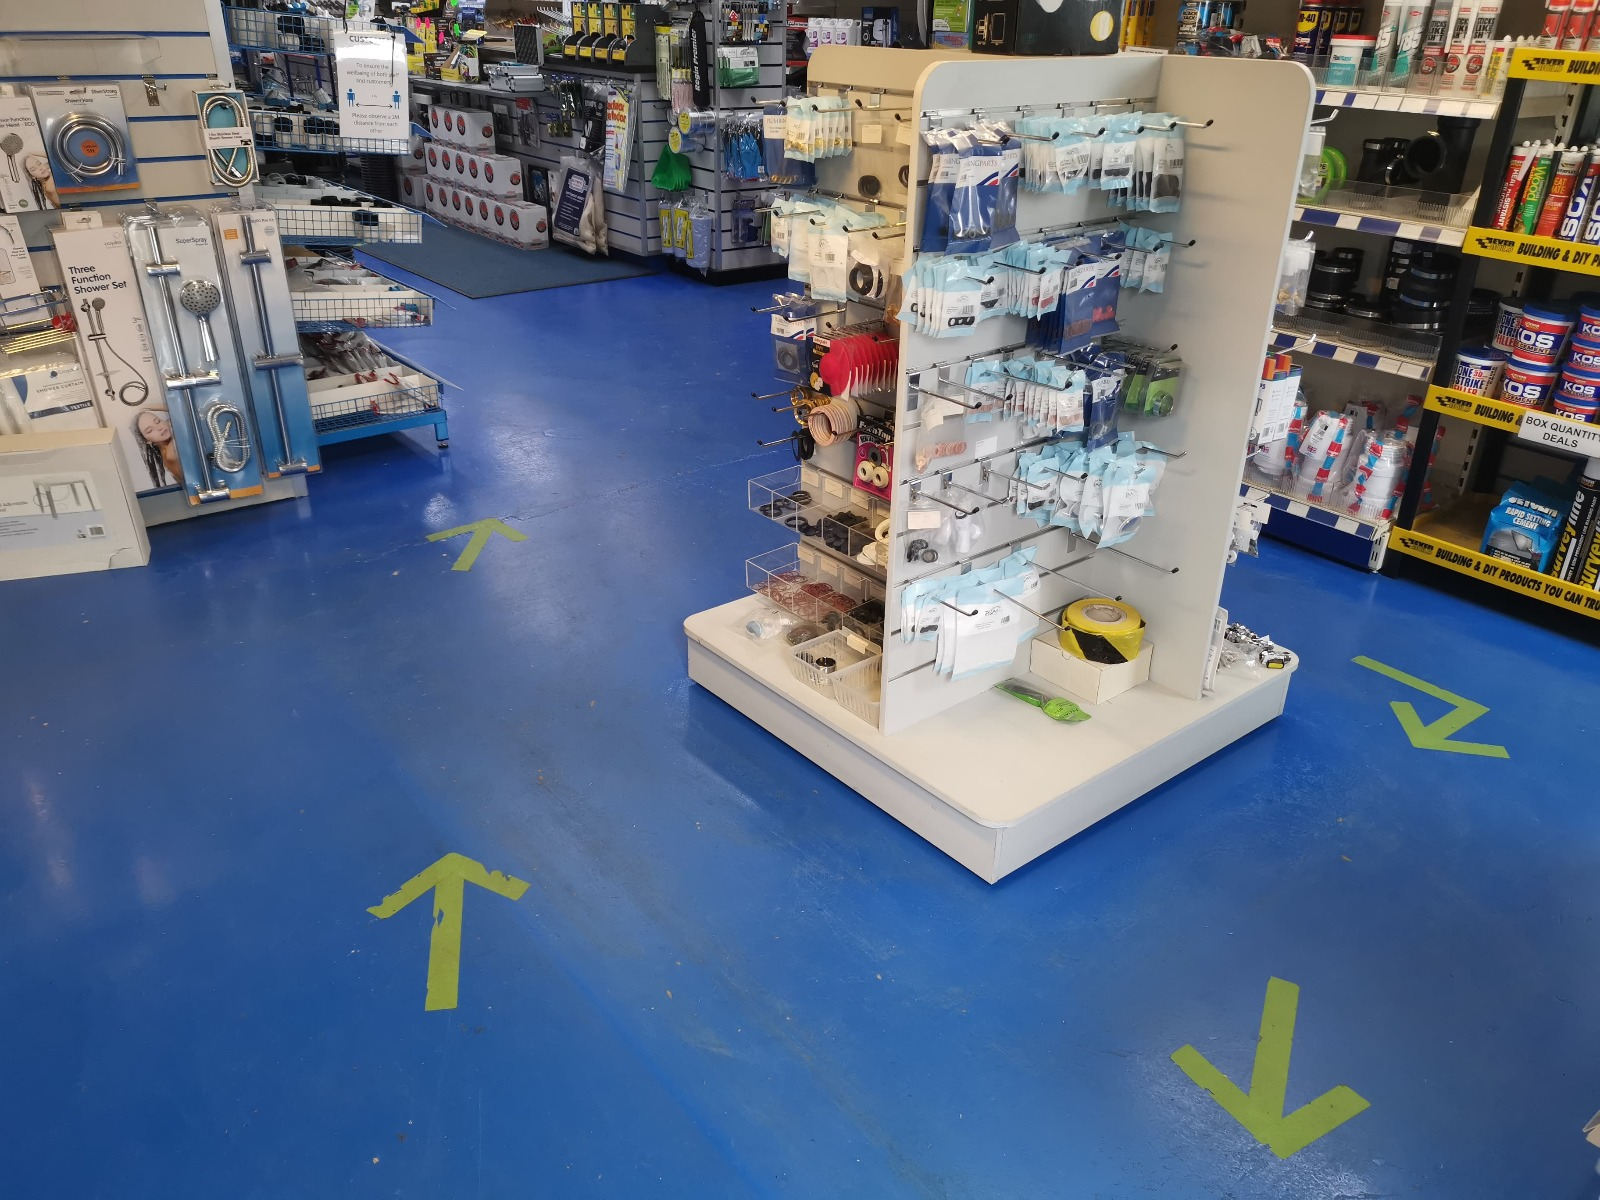 arrows on the floor indicating direction of travel in store